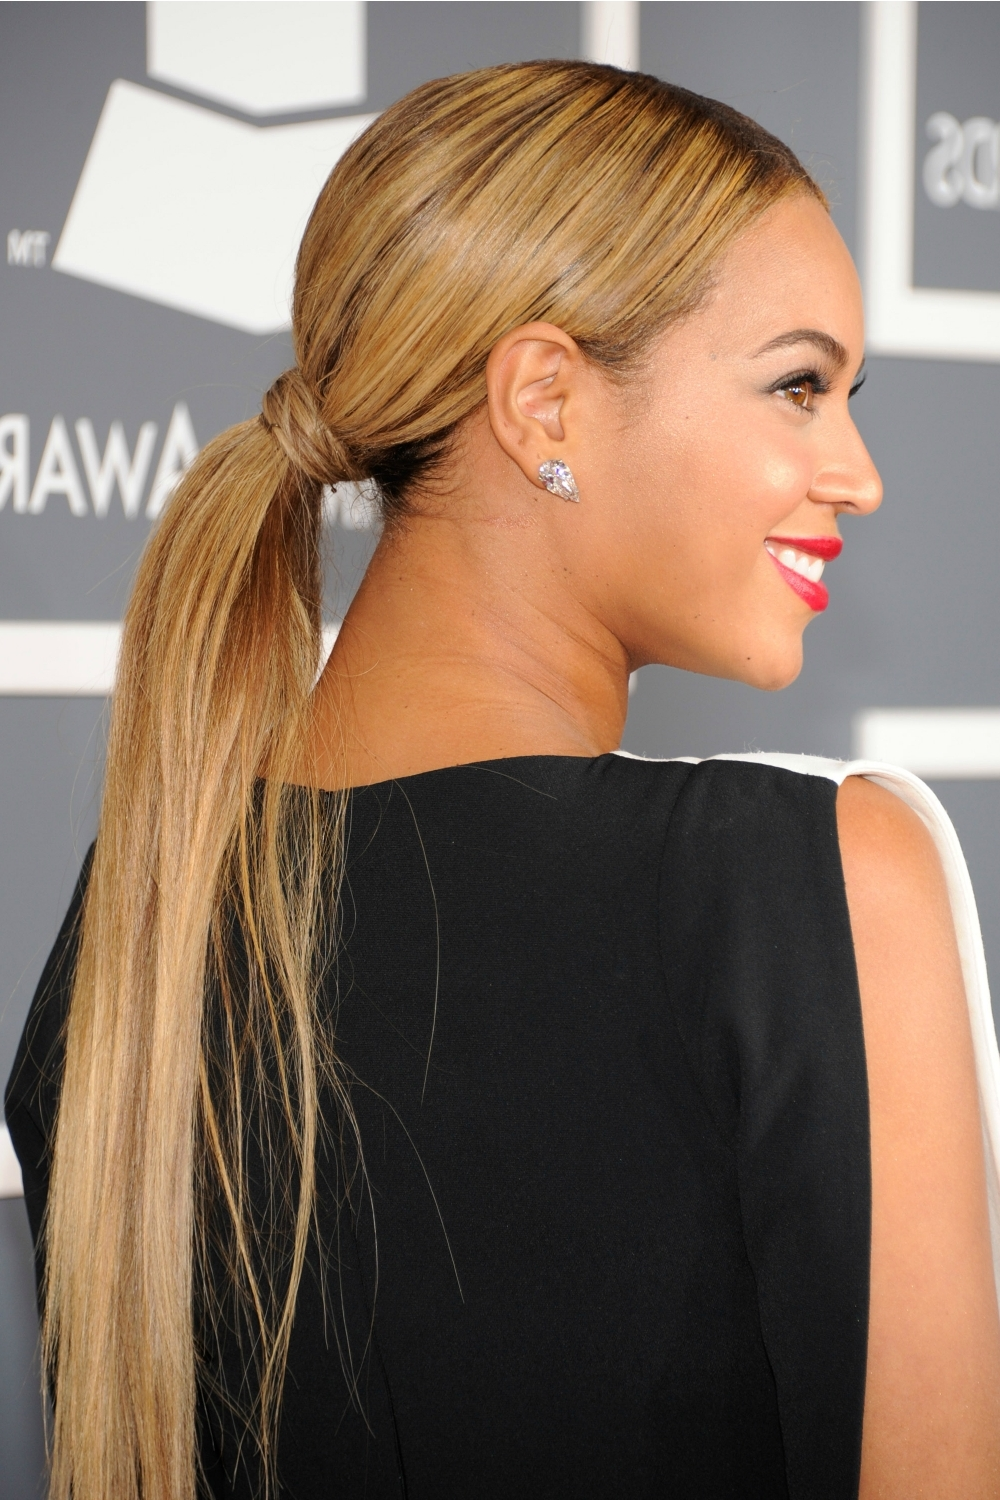 20 Ponytail Hairstyles – Easy Ponytail Ideas You Should This Summer With Trendy Super Sleek Ponytail Hairstyles (View 2 of 20)